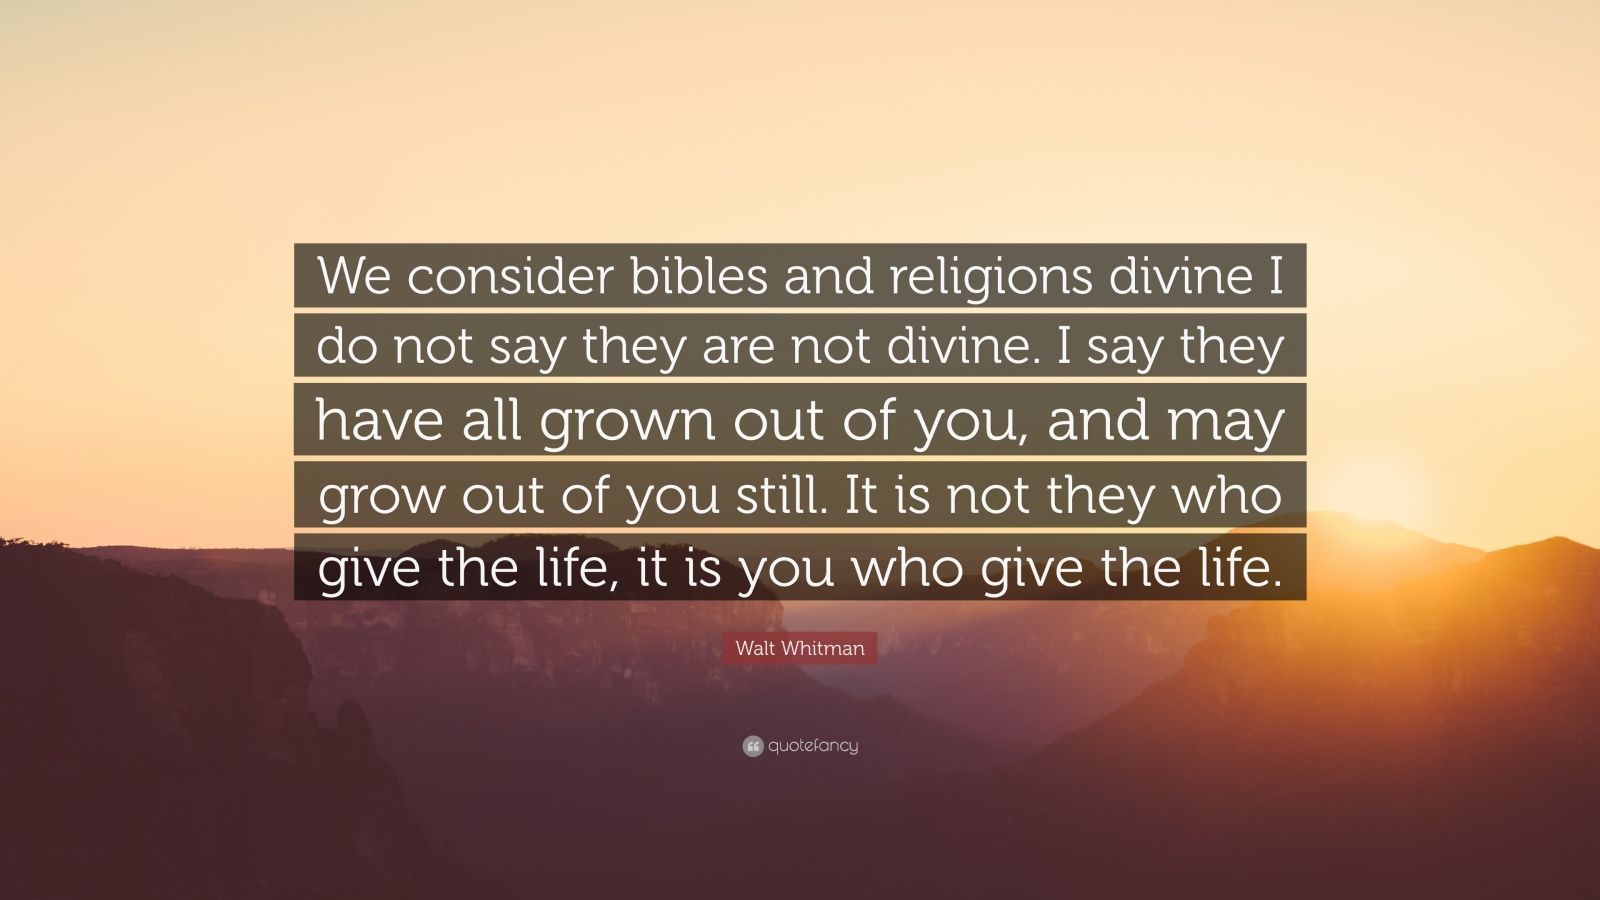 "Walt Whitman Quote: ""We consider bibles and religions divine I do not say they are not divine. I say they have all grown out of you, and may grow out of you still. It is not they who give the life, it is you who give the life."""